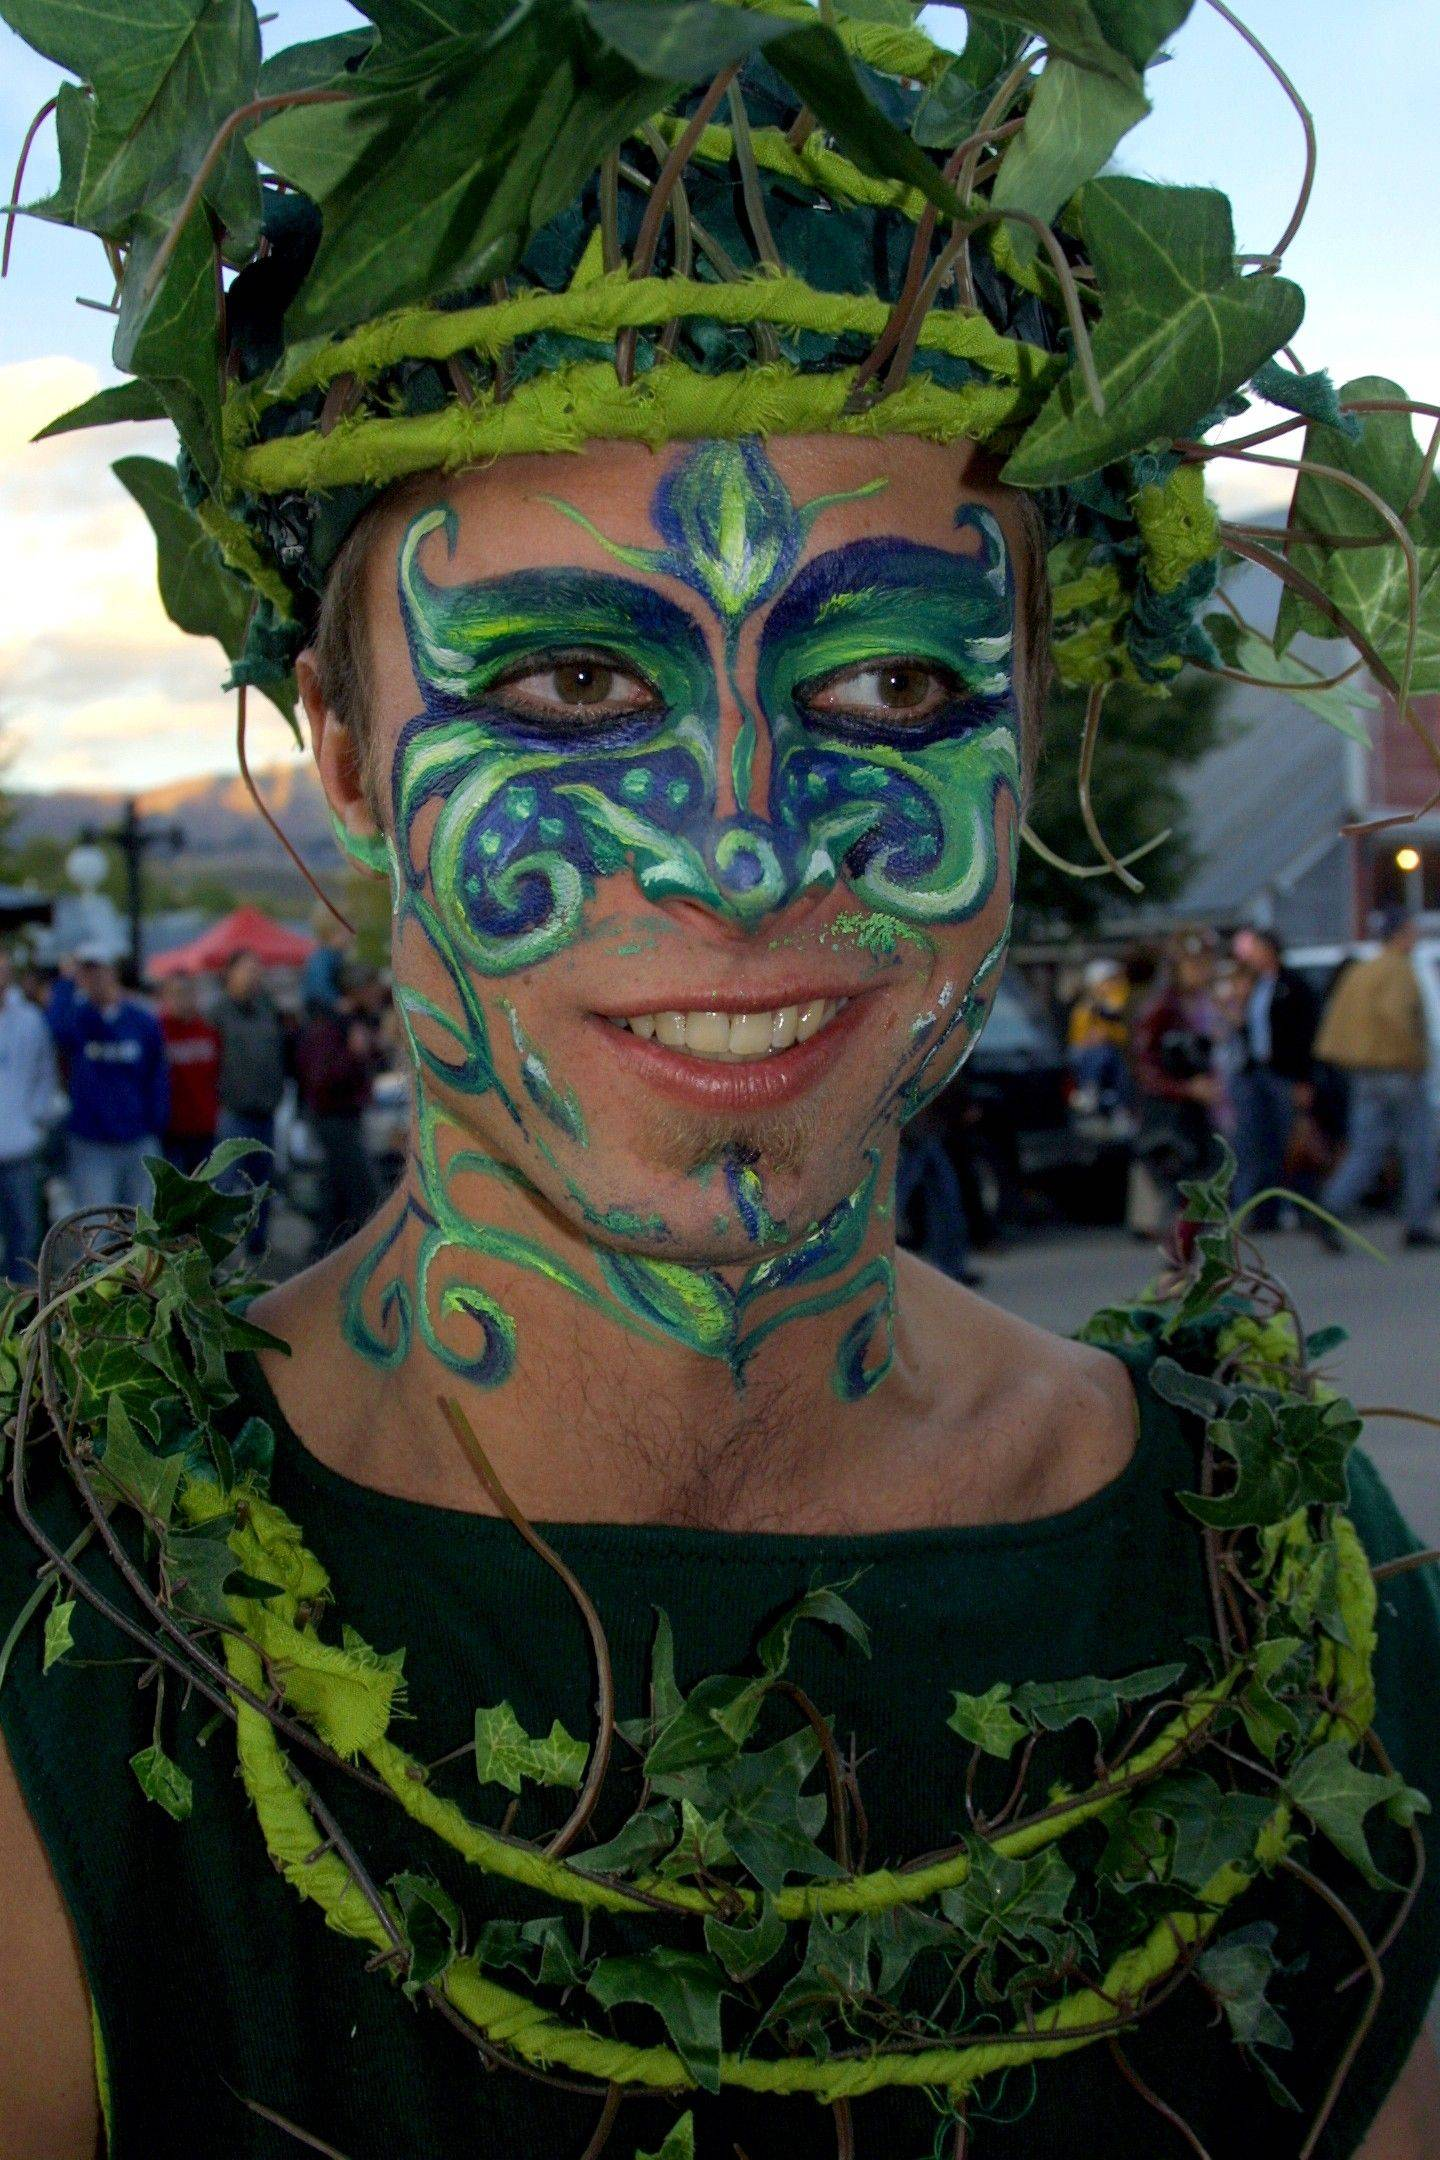 Celebrate Vinotok, a time of feasting, music and storytelling, in Crested Butte, Colo.